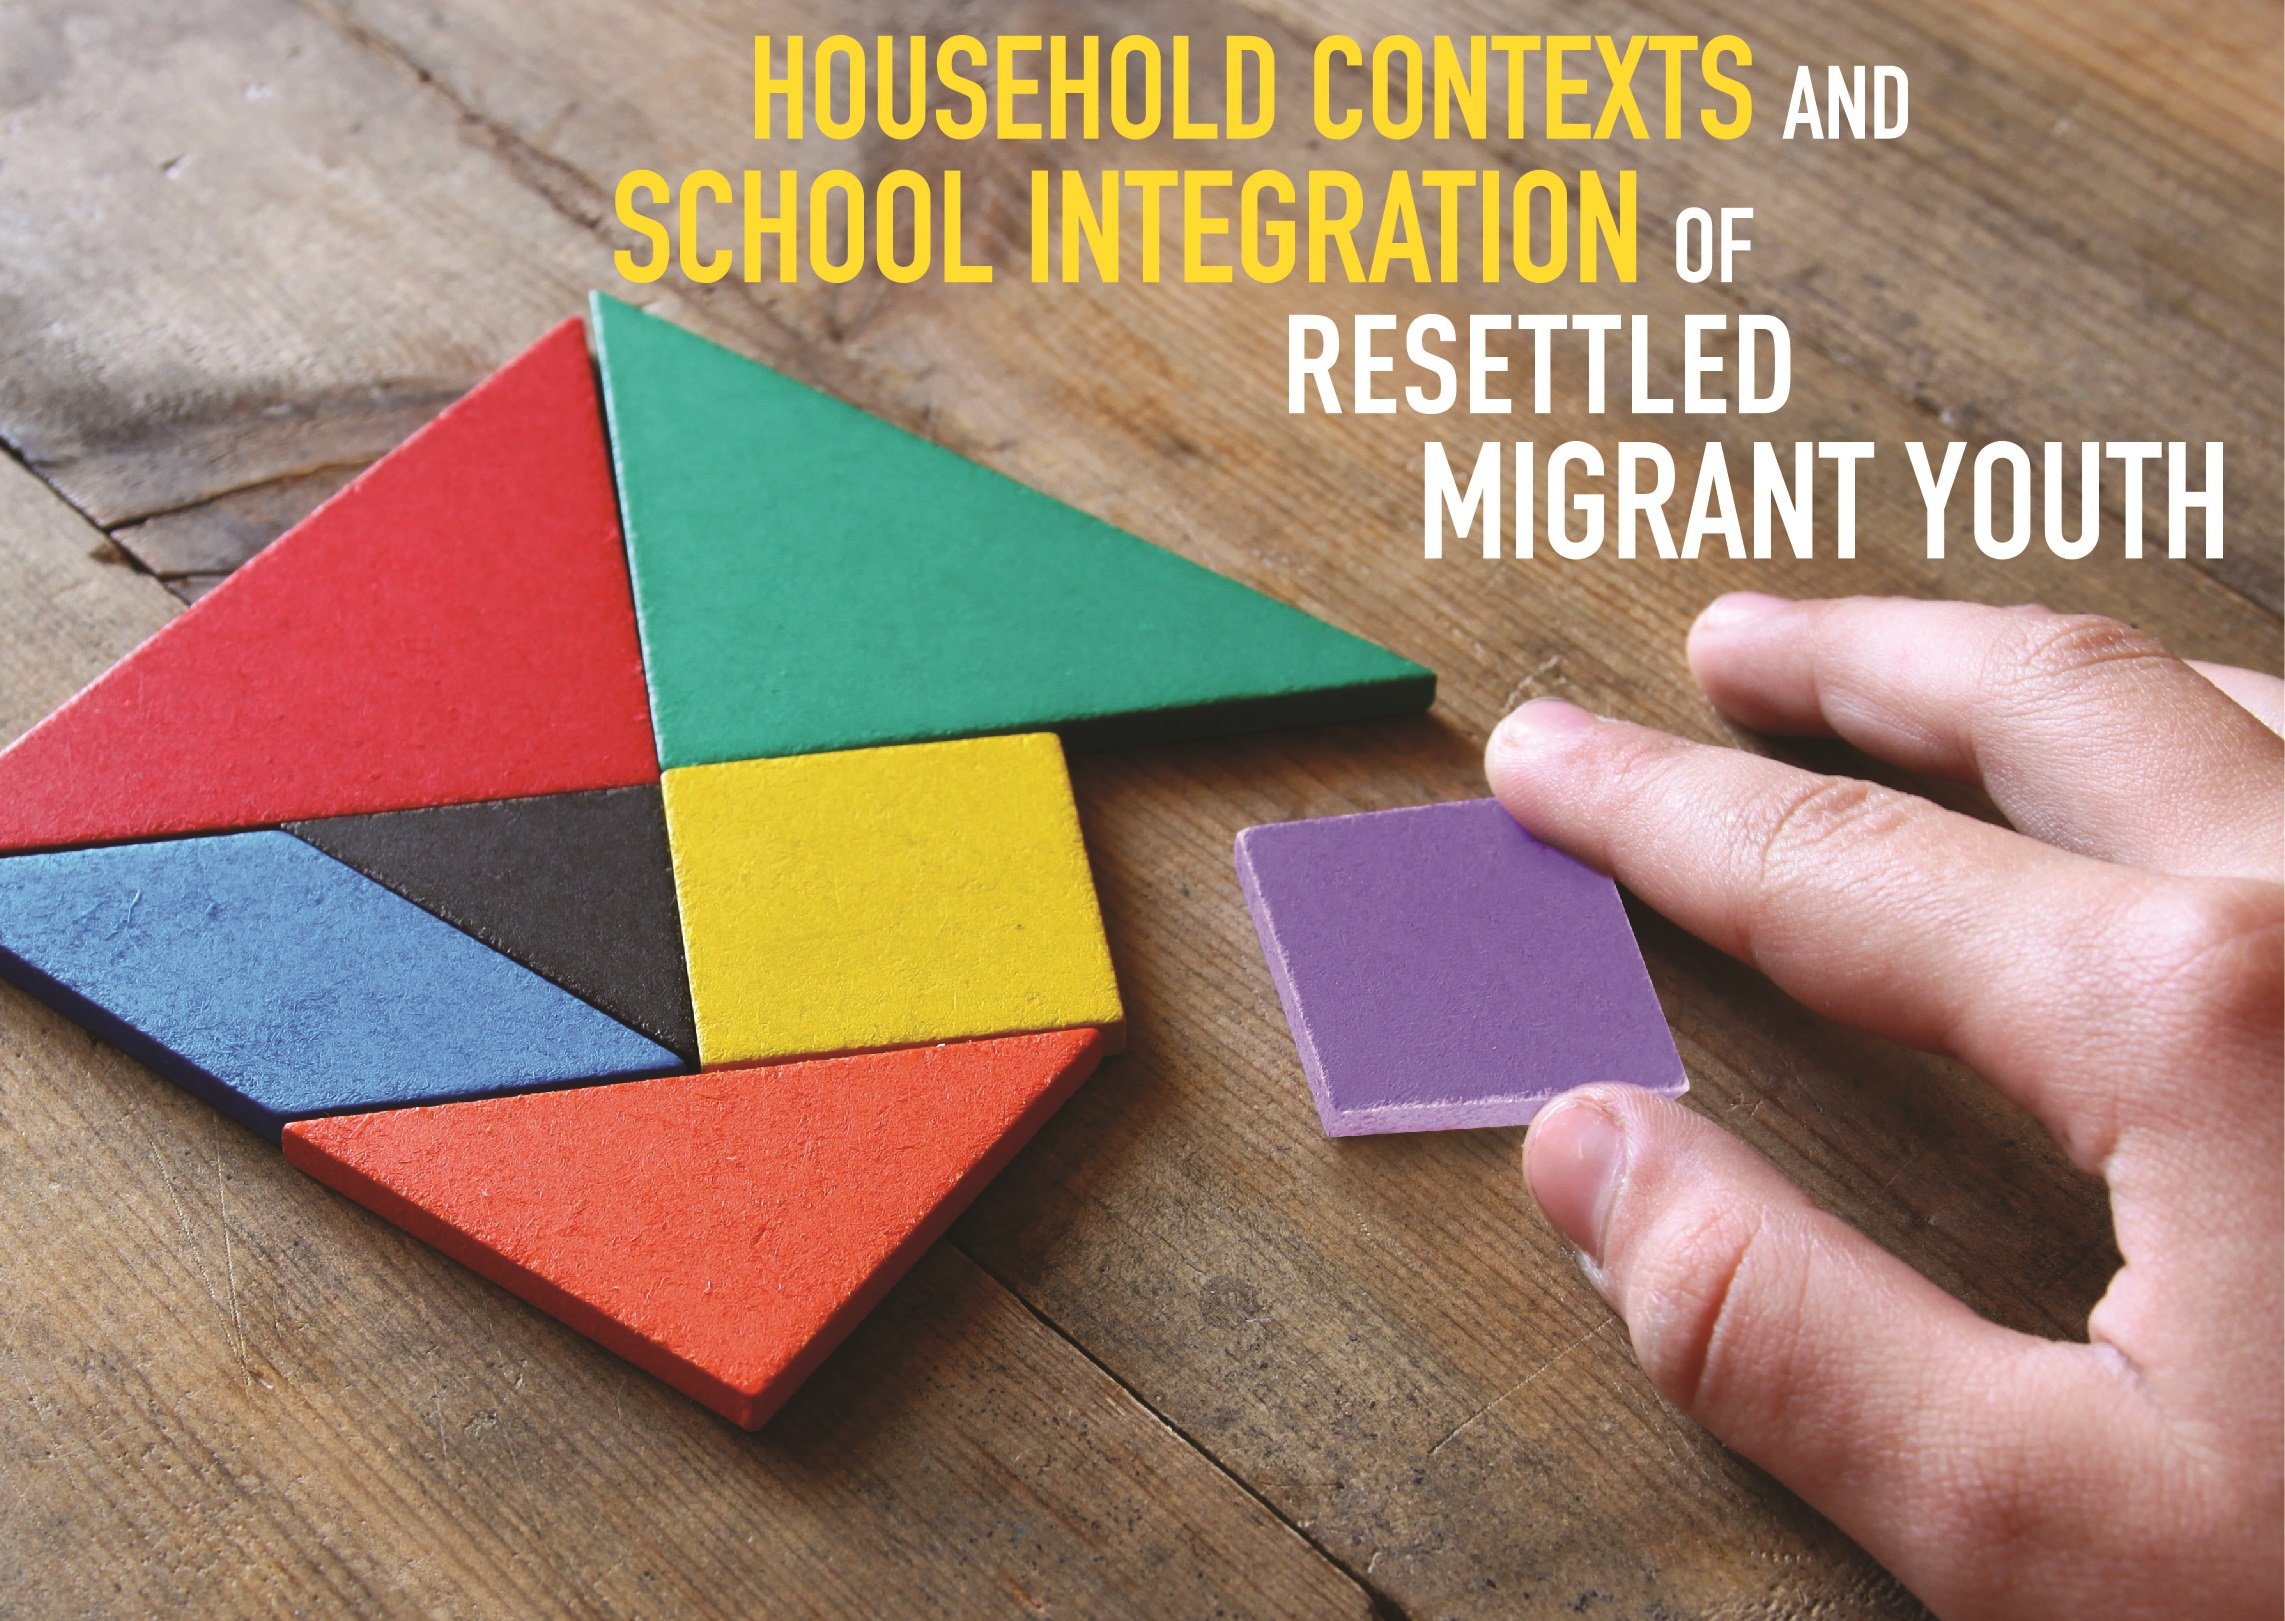 Household Contexts and School Integration of Resettled Migrant Youth